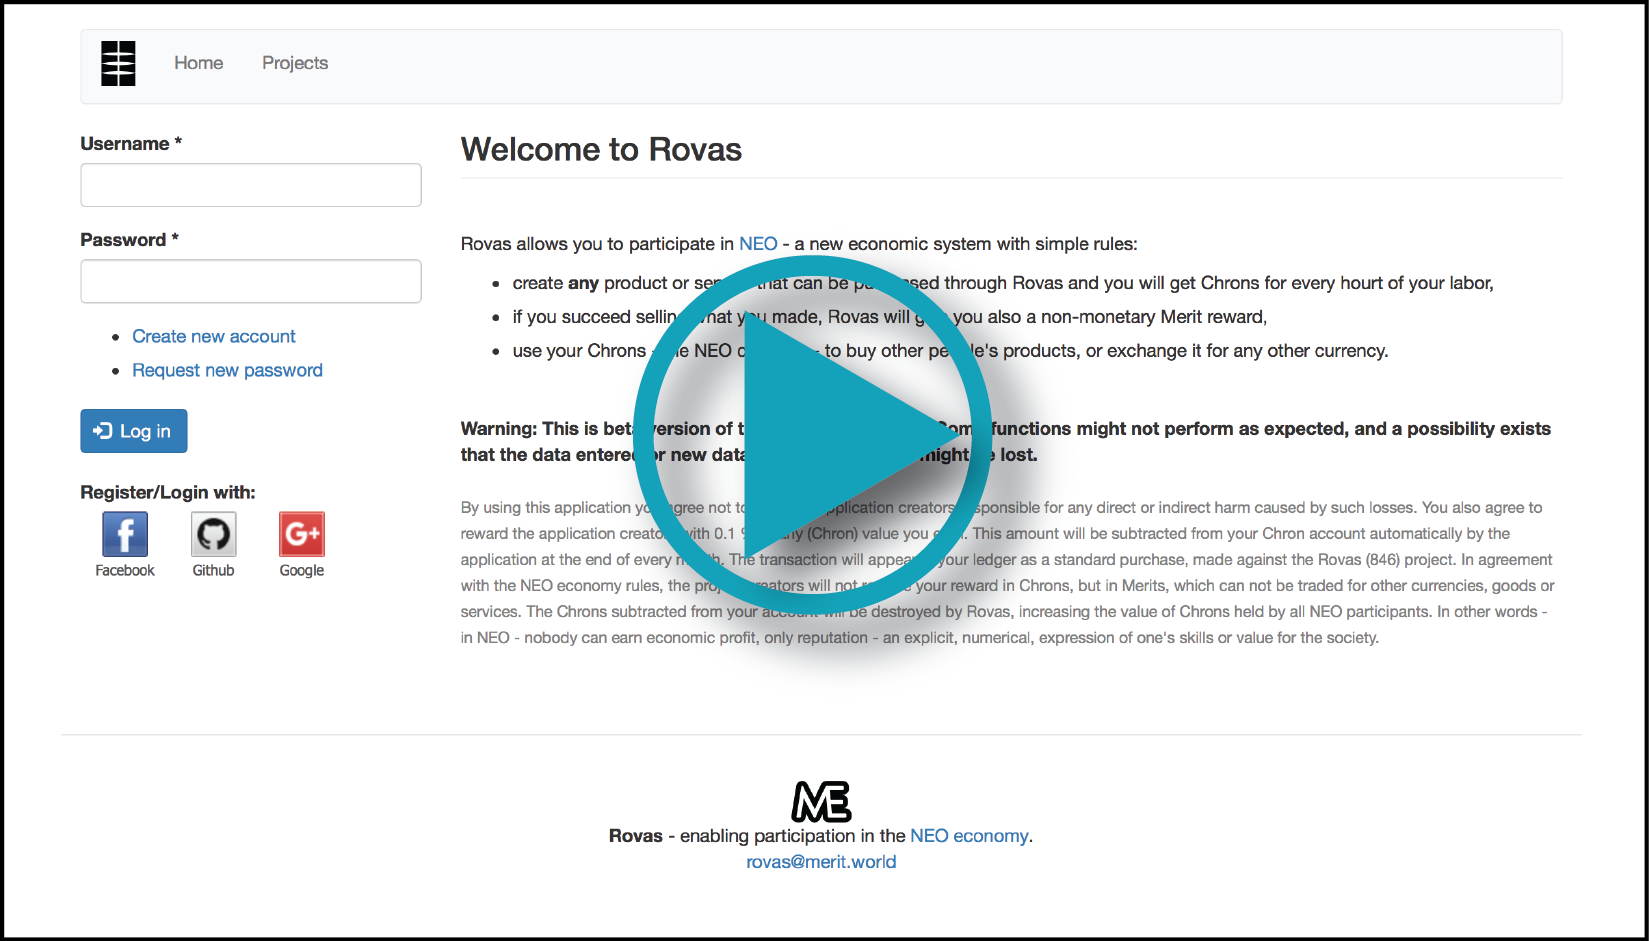 Video demonstrating the Rovas application